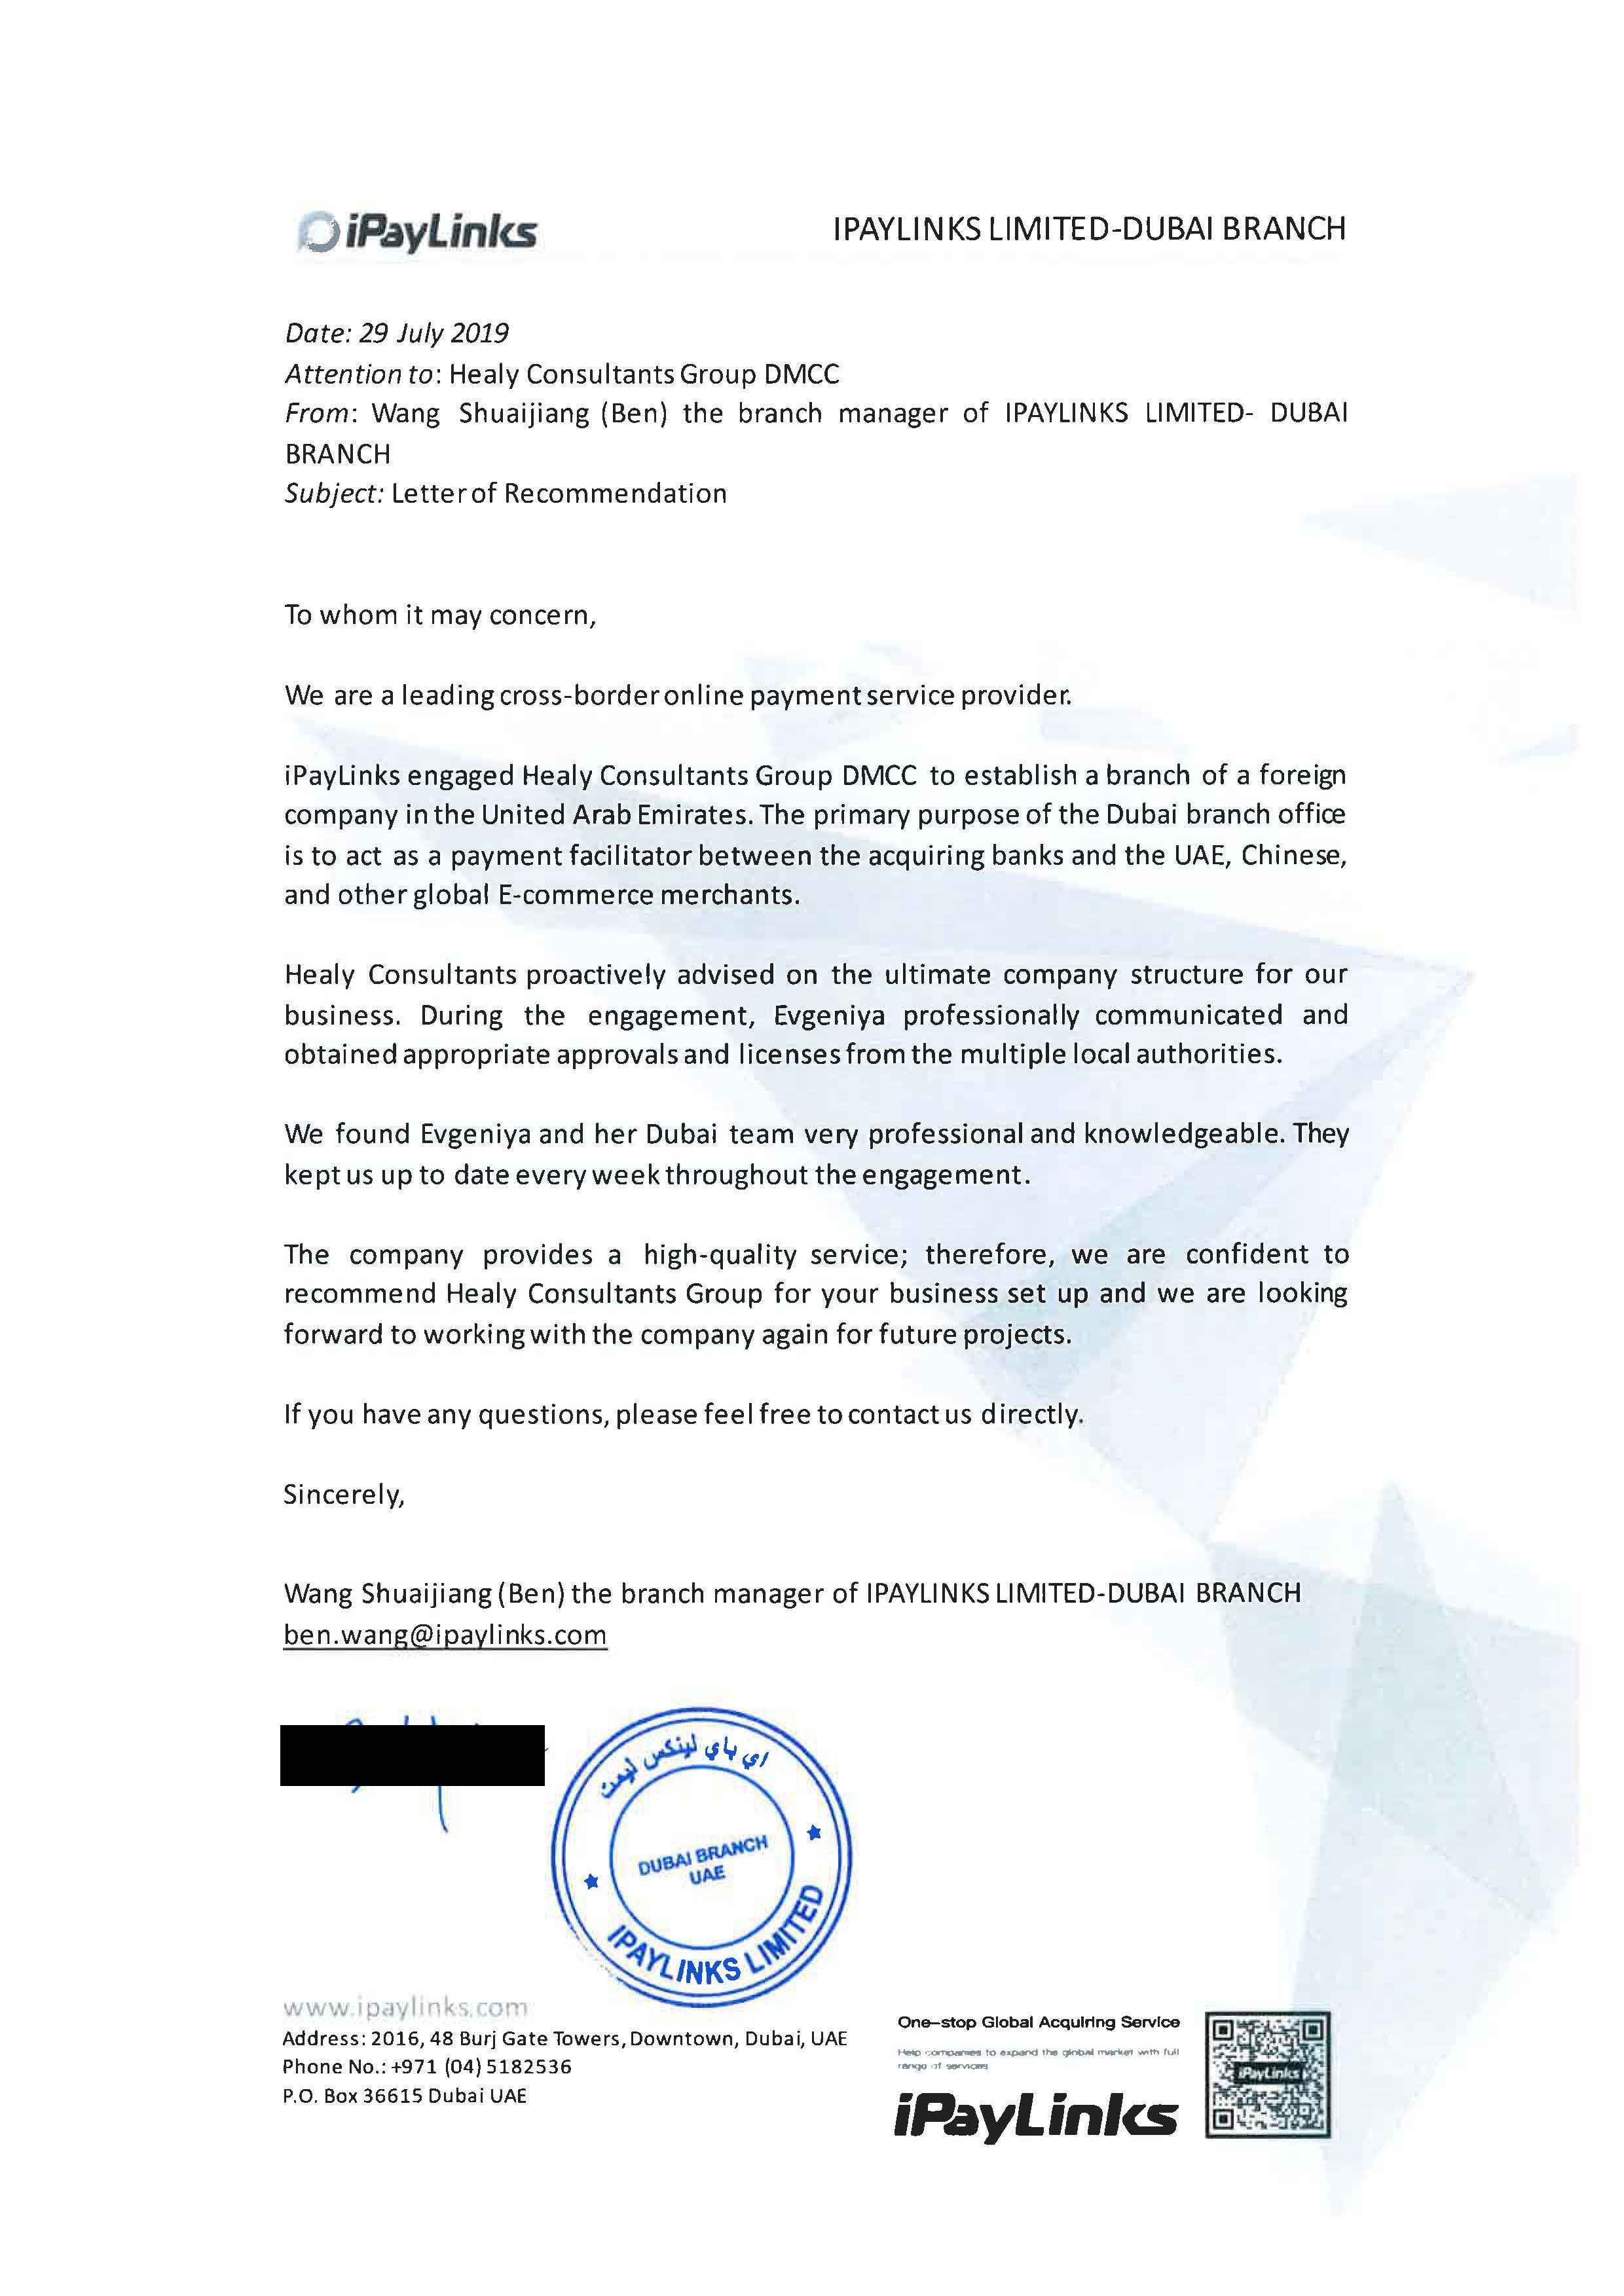 reference letter from iPayLinks Limited